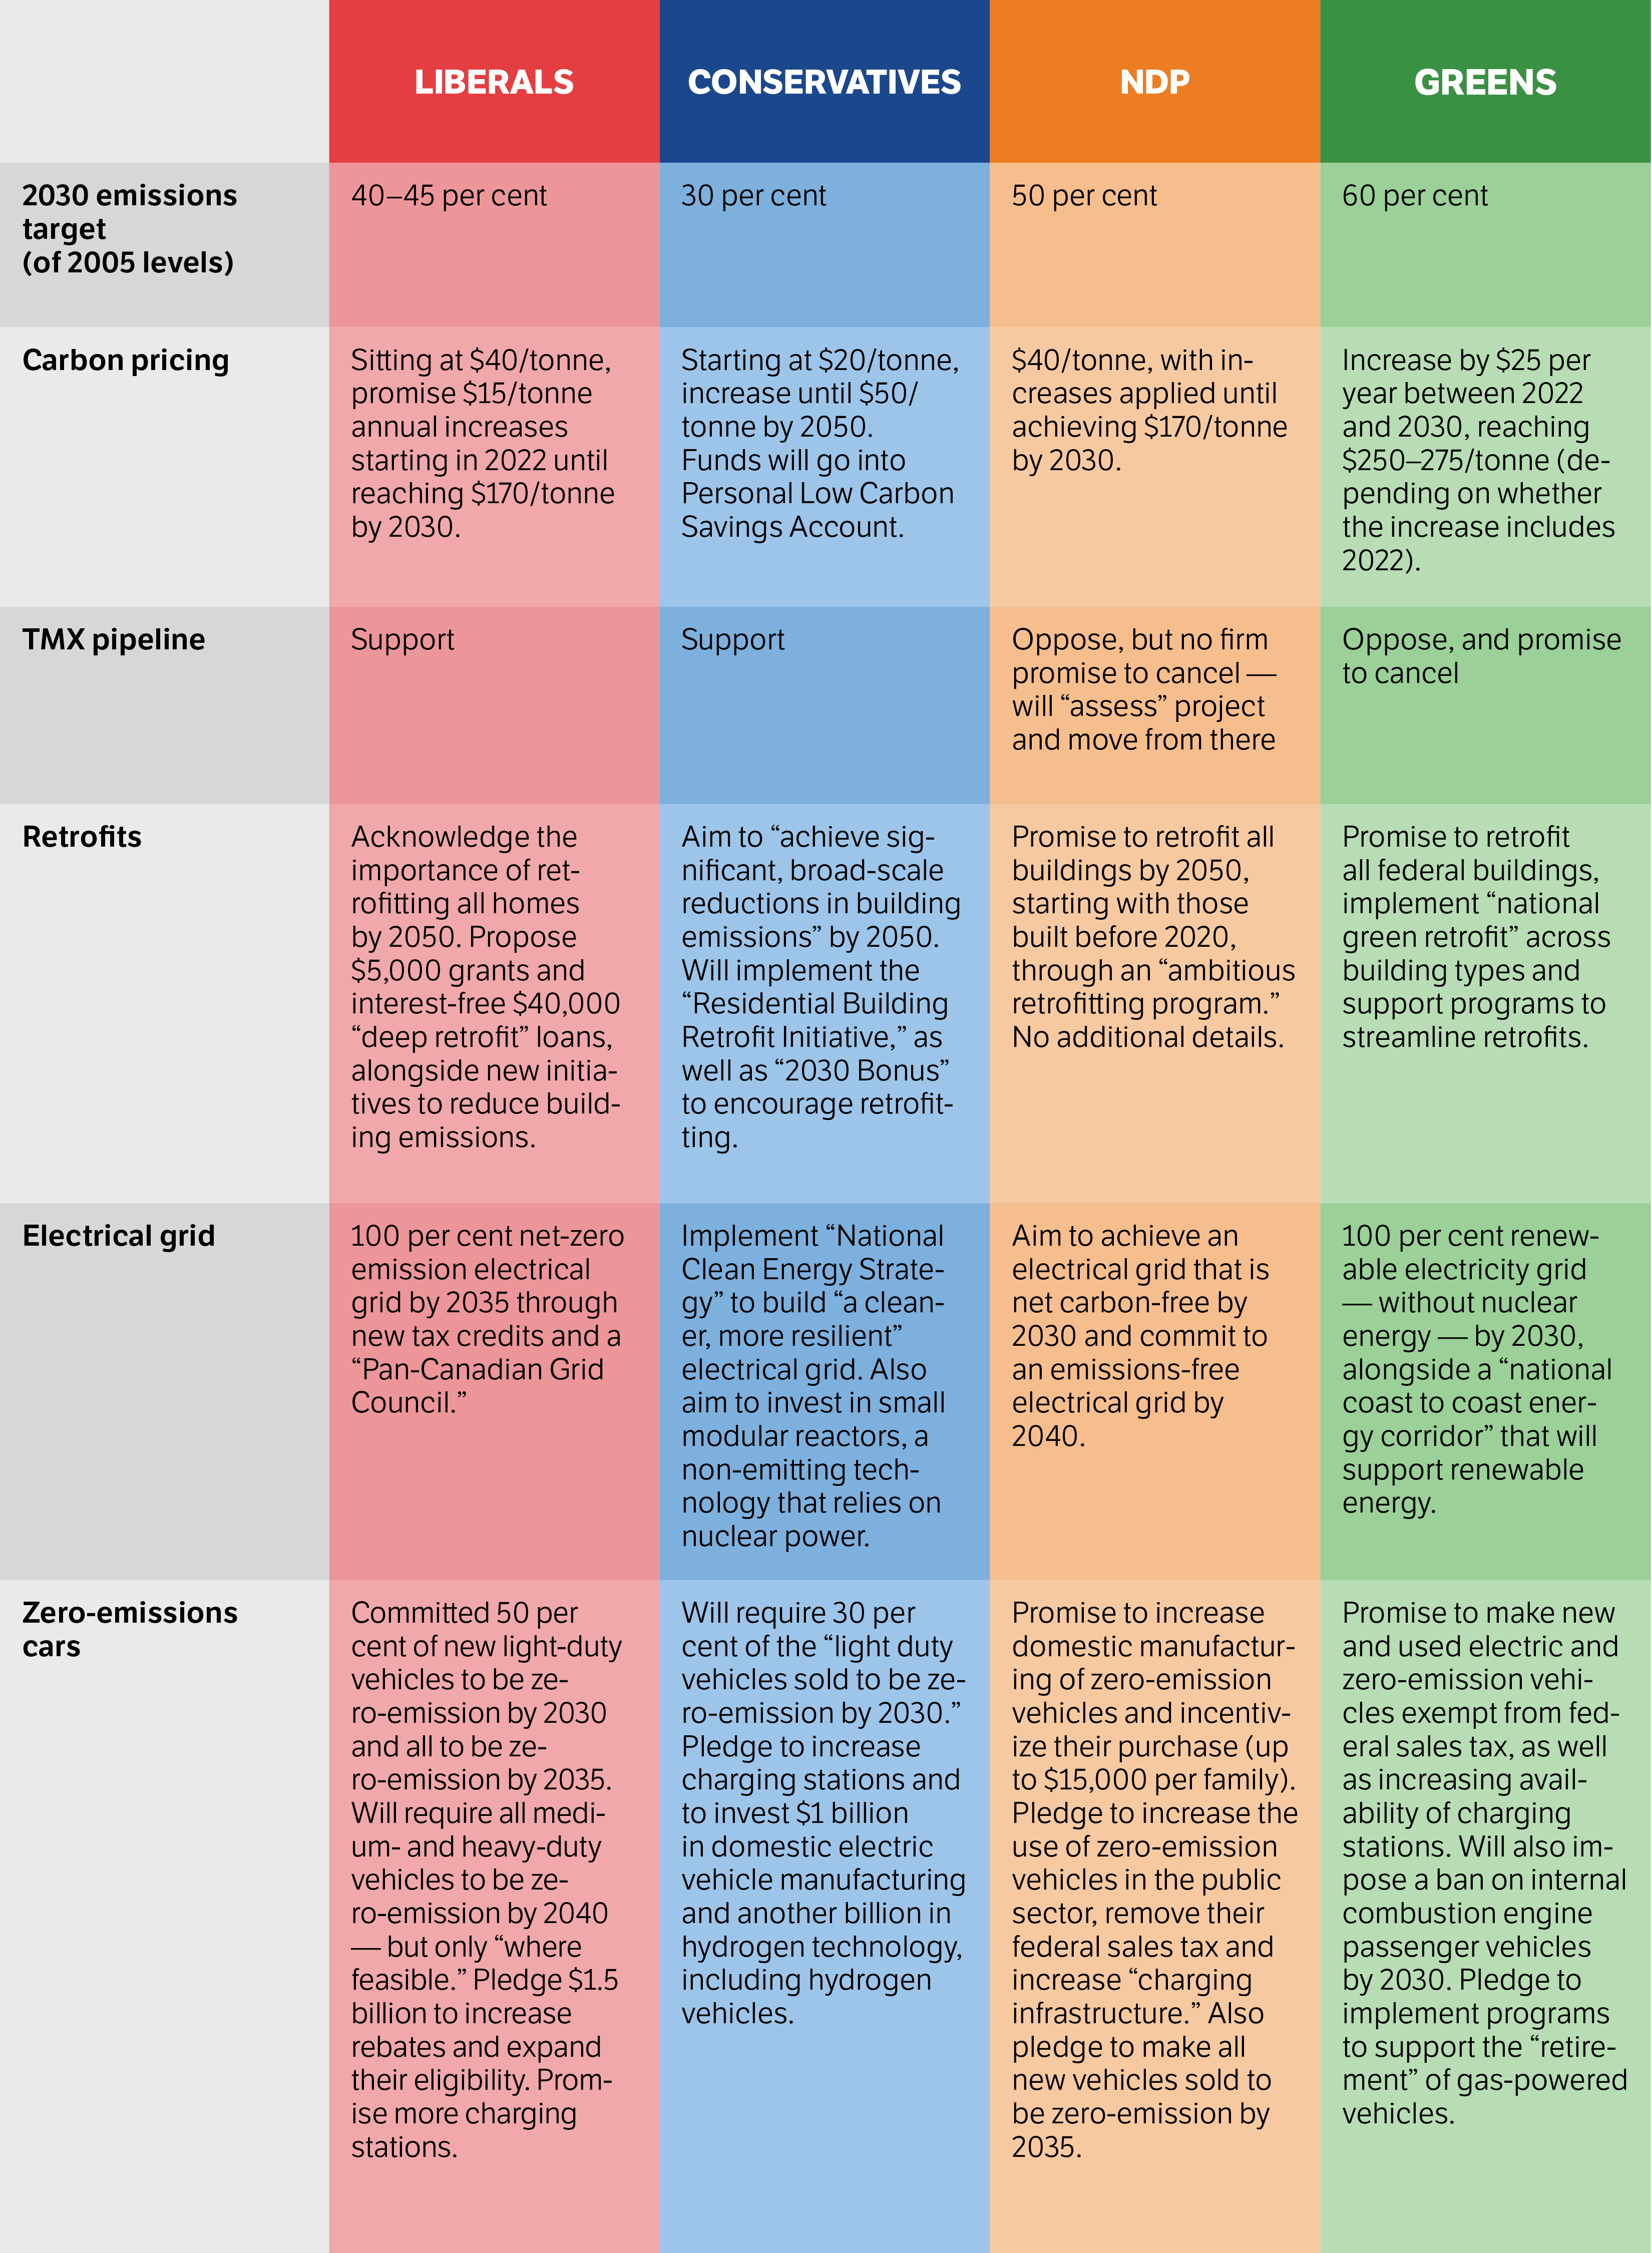 A table comparing where the four major parties stand on certain climate policies.